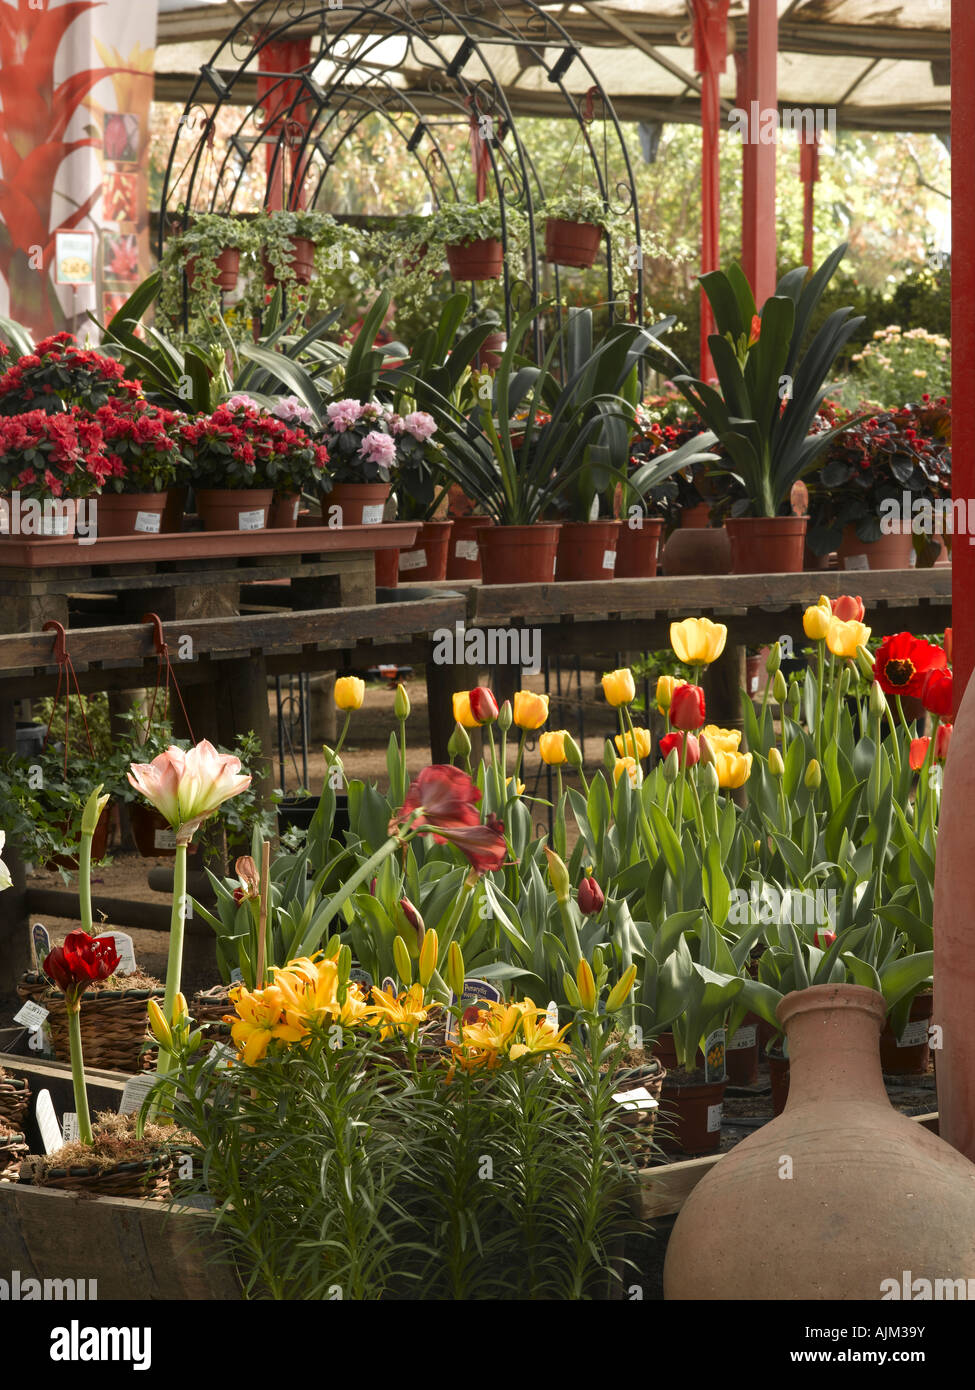 Different plants at a gardening store Stock Photo: 14765414 - Alamy